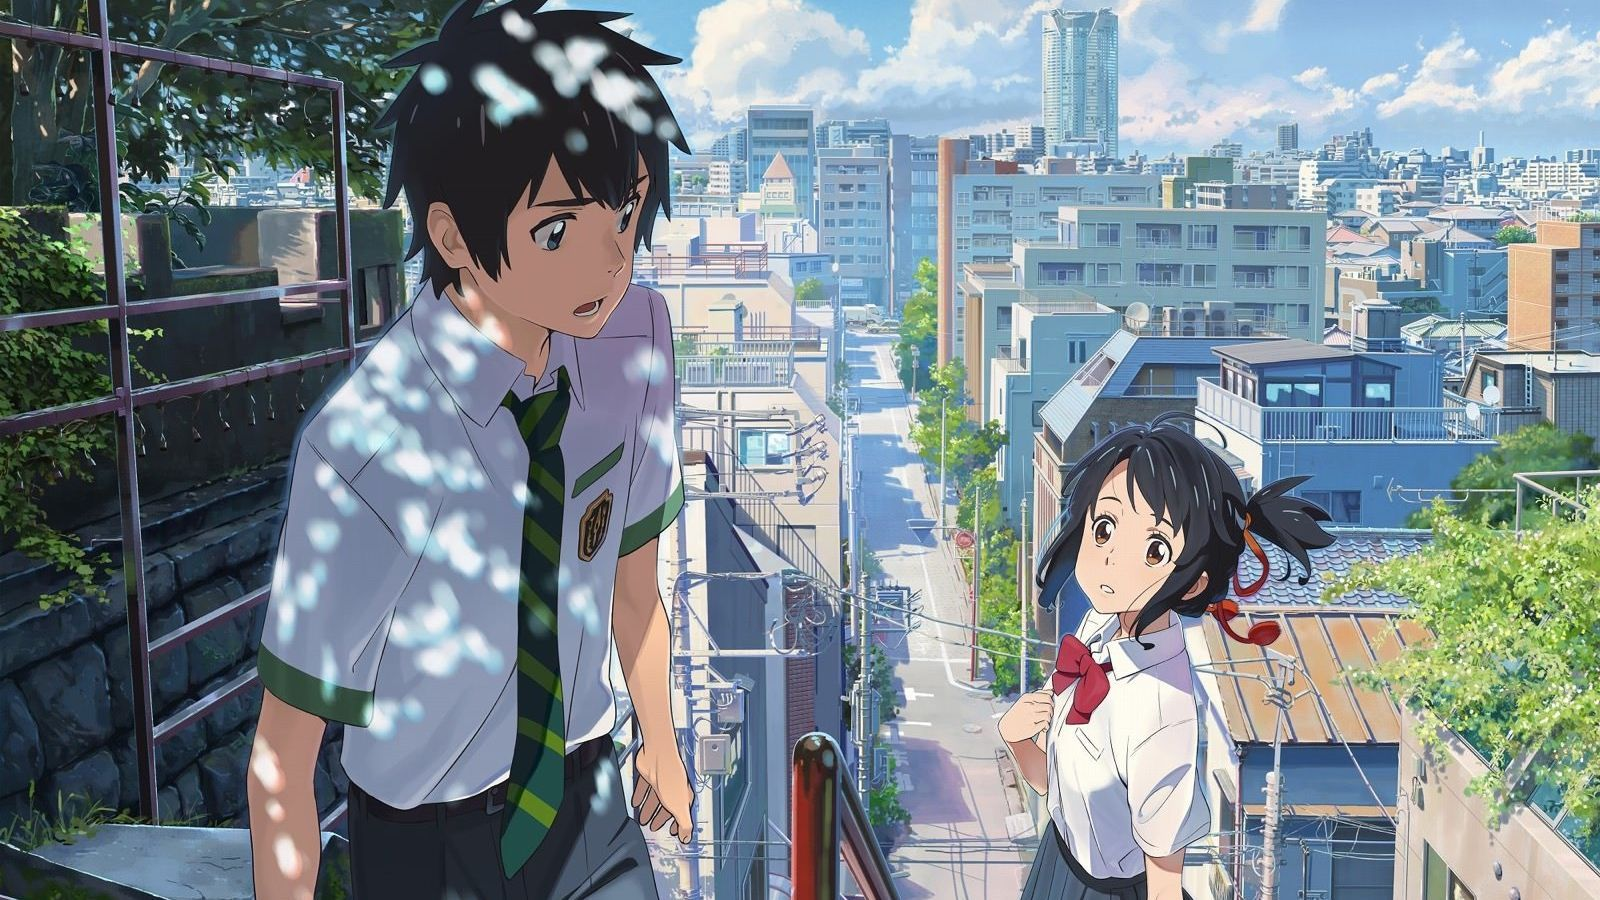 Crítica de 'Your name'